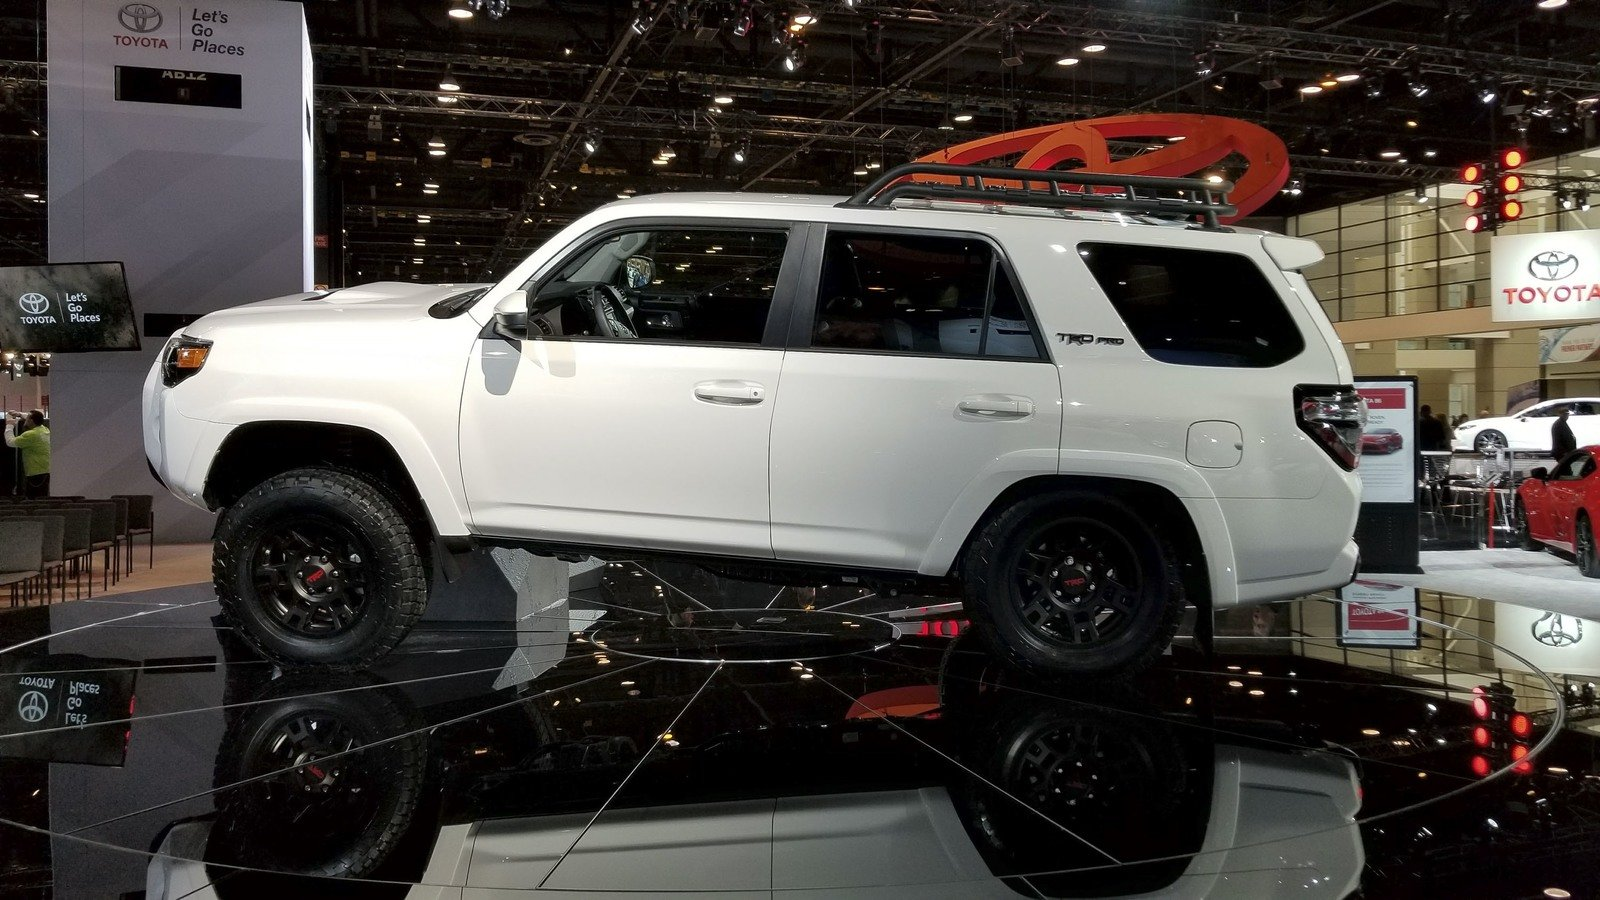 Off Road Jeep Images >> 2019 Toyota 4Runner Price * Concept * Release date * Specs * Interior